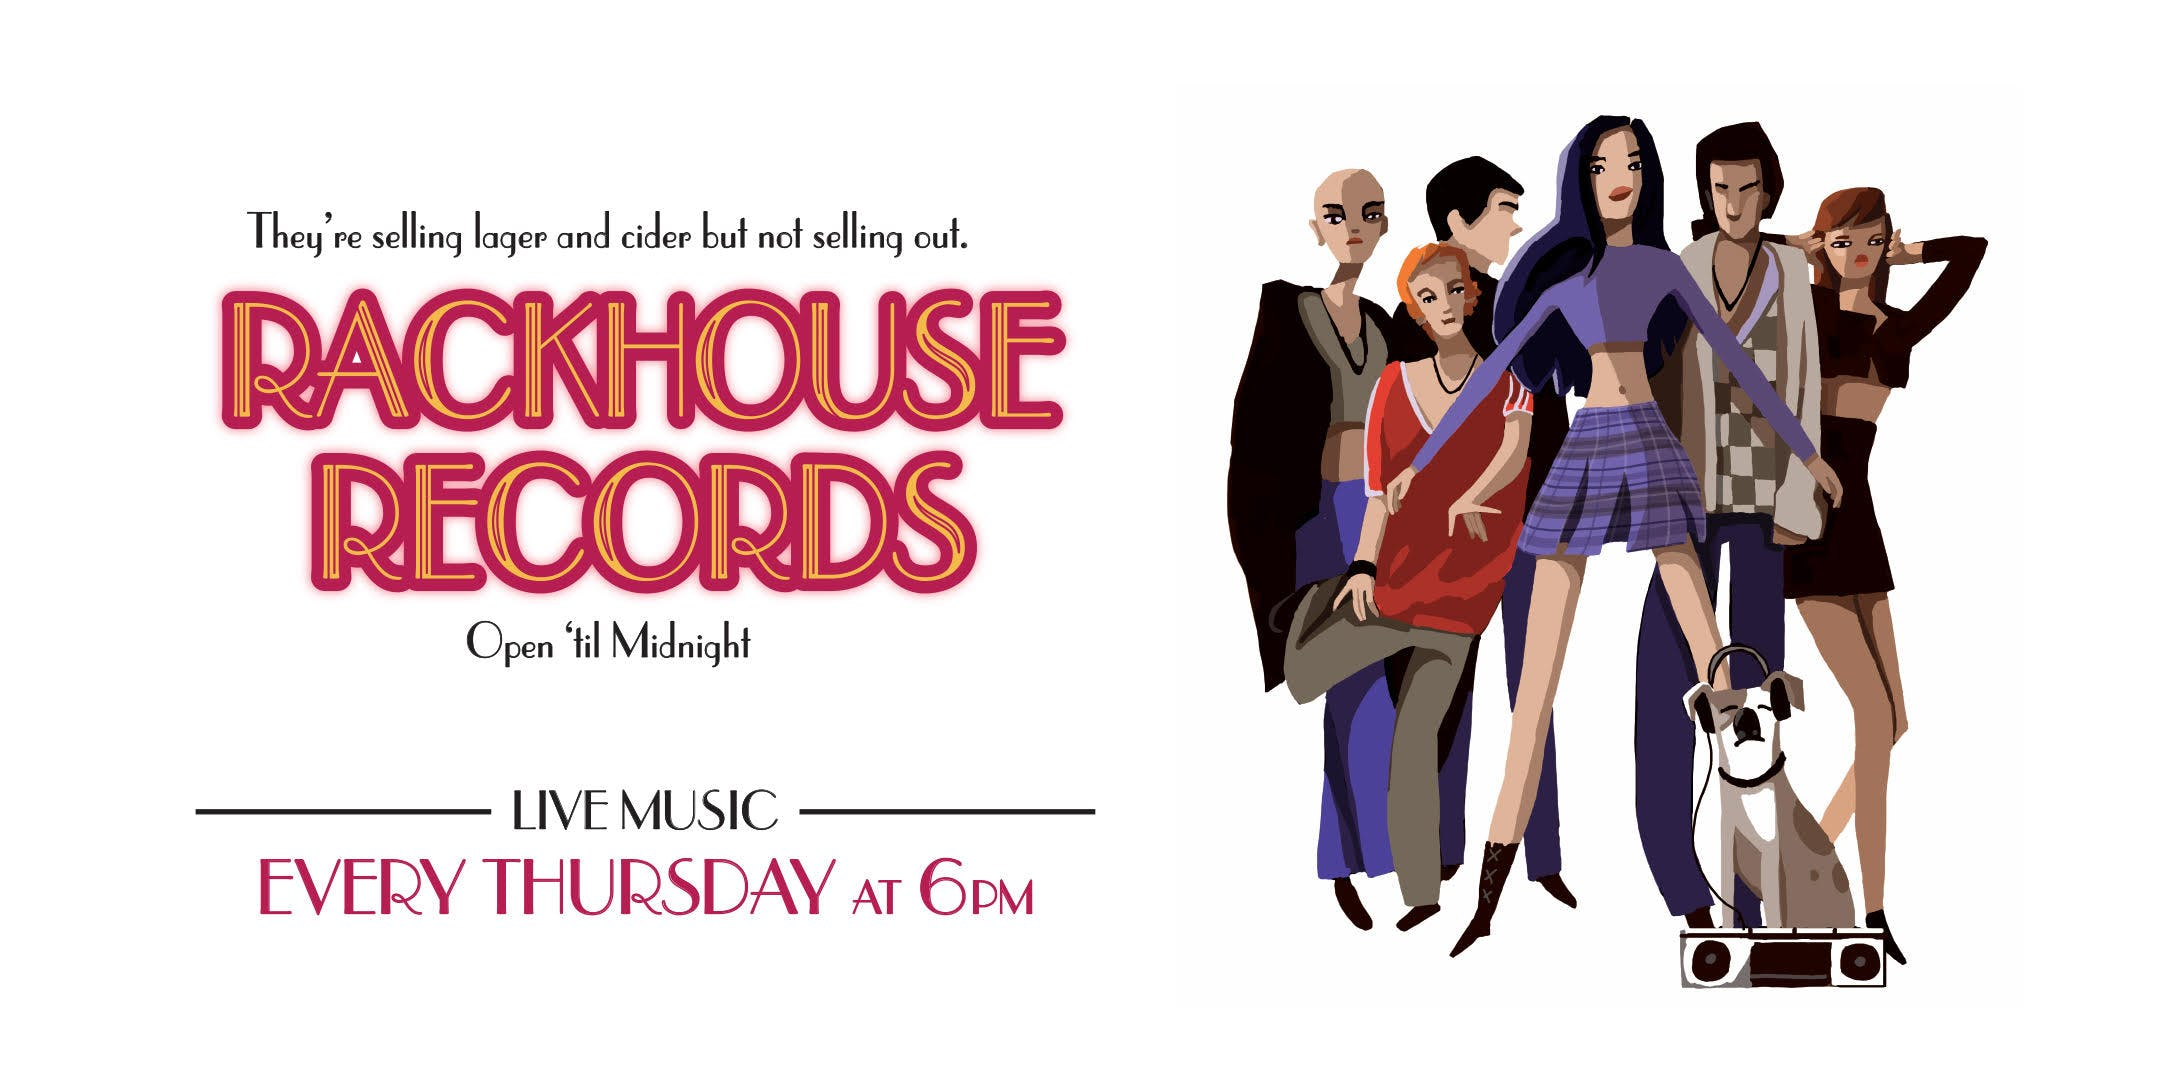 Rackhouse Records: Thursday Night Live